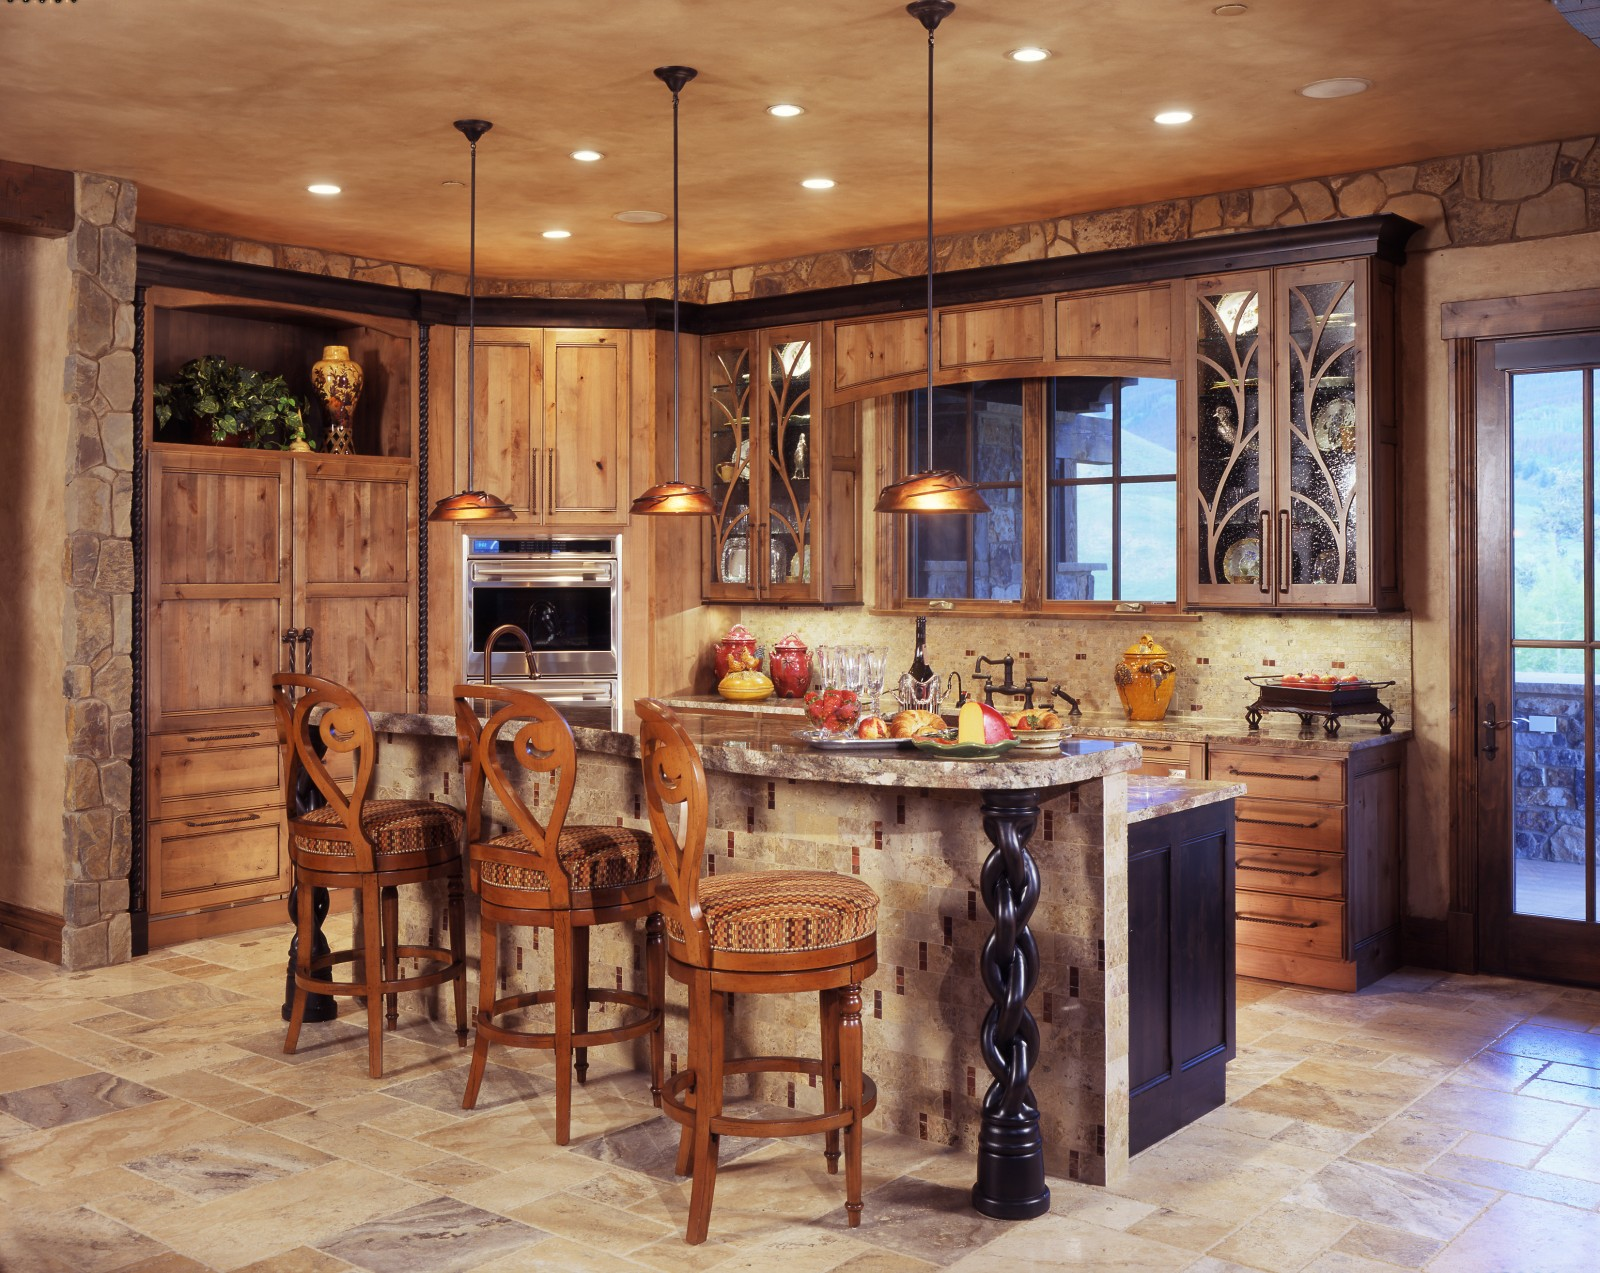 rustic kitchen decorating ideas top 25 ideas to spruce up the kitchen decor in 2014 qnud 21593